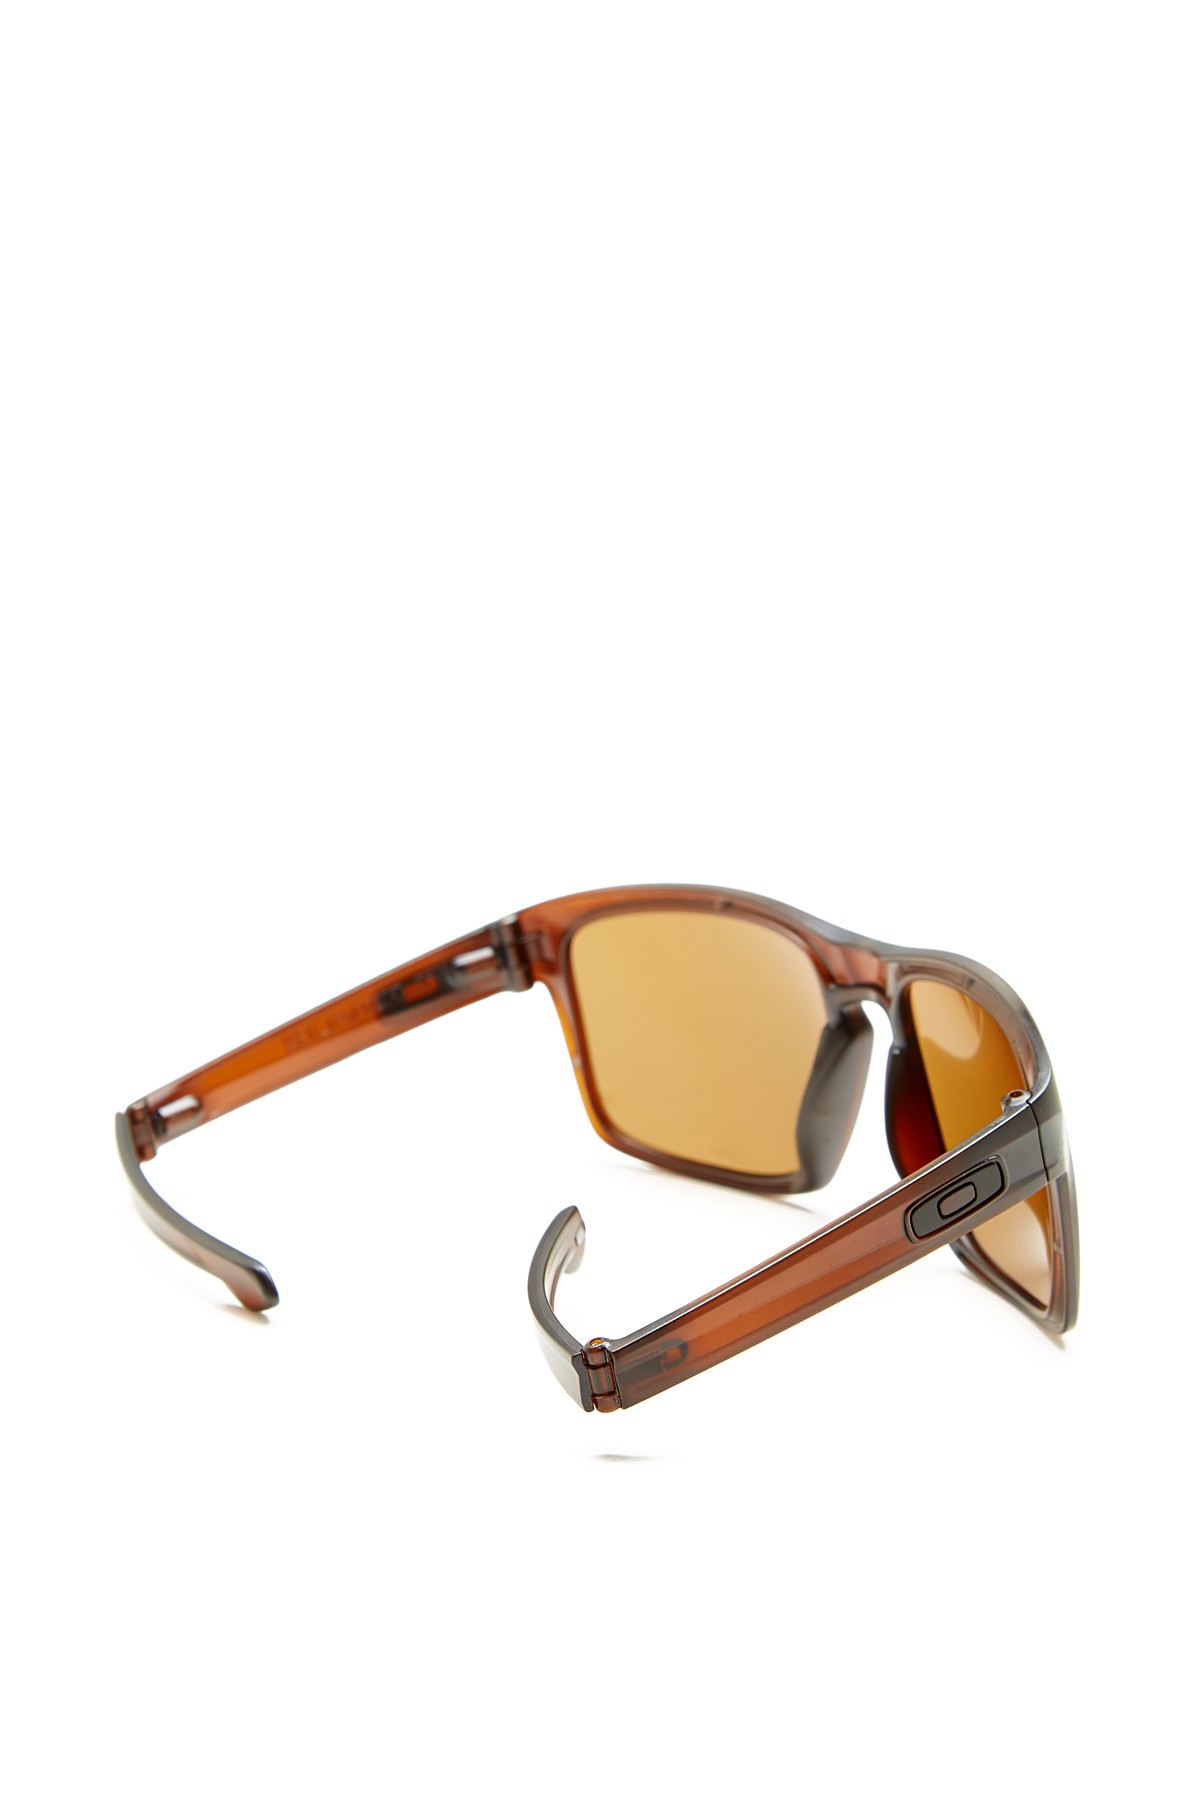 93a0639816 Oakley Silver Sunglasses Folding - Bitterroot Public Library